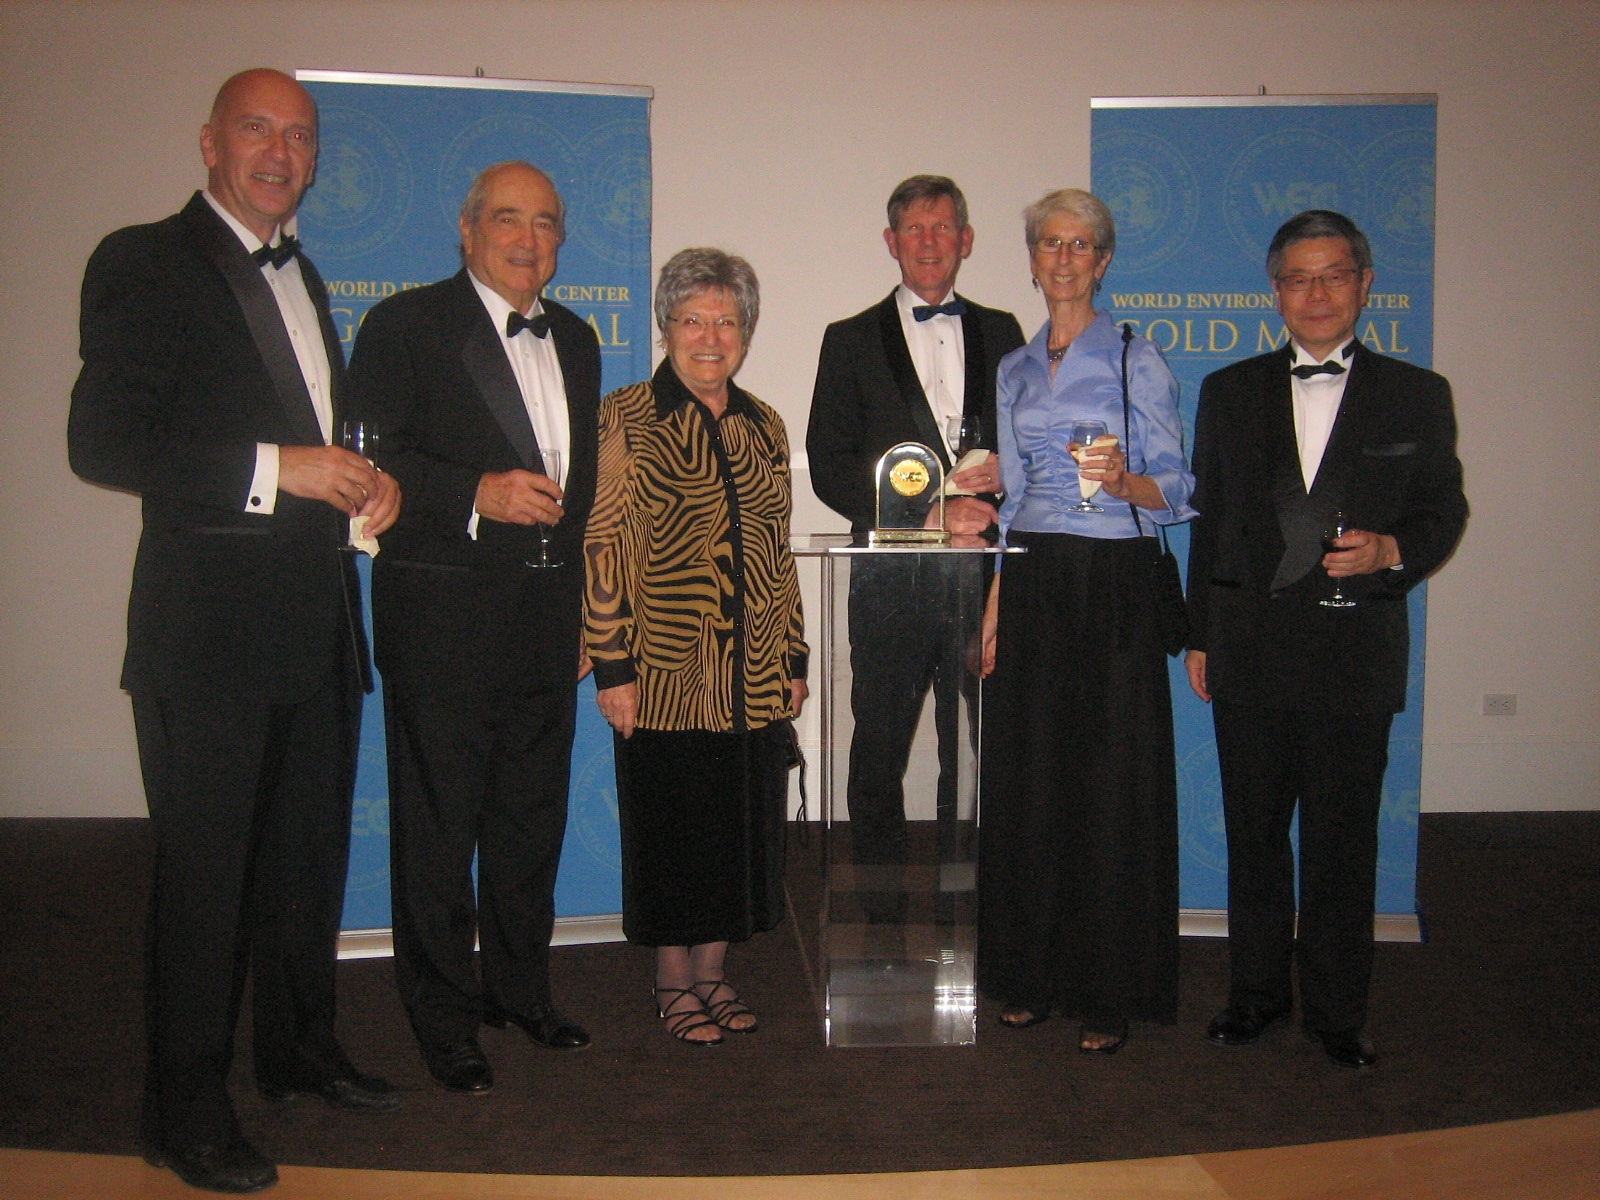 The  Jury of the 2011 WEC Gold Medal Award for International Achievement in Sustainable Development presented to Nestle S.A. on May 19, 2011 at WEC's 27th Annual Gold Medal Gala